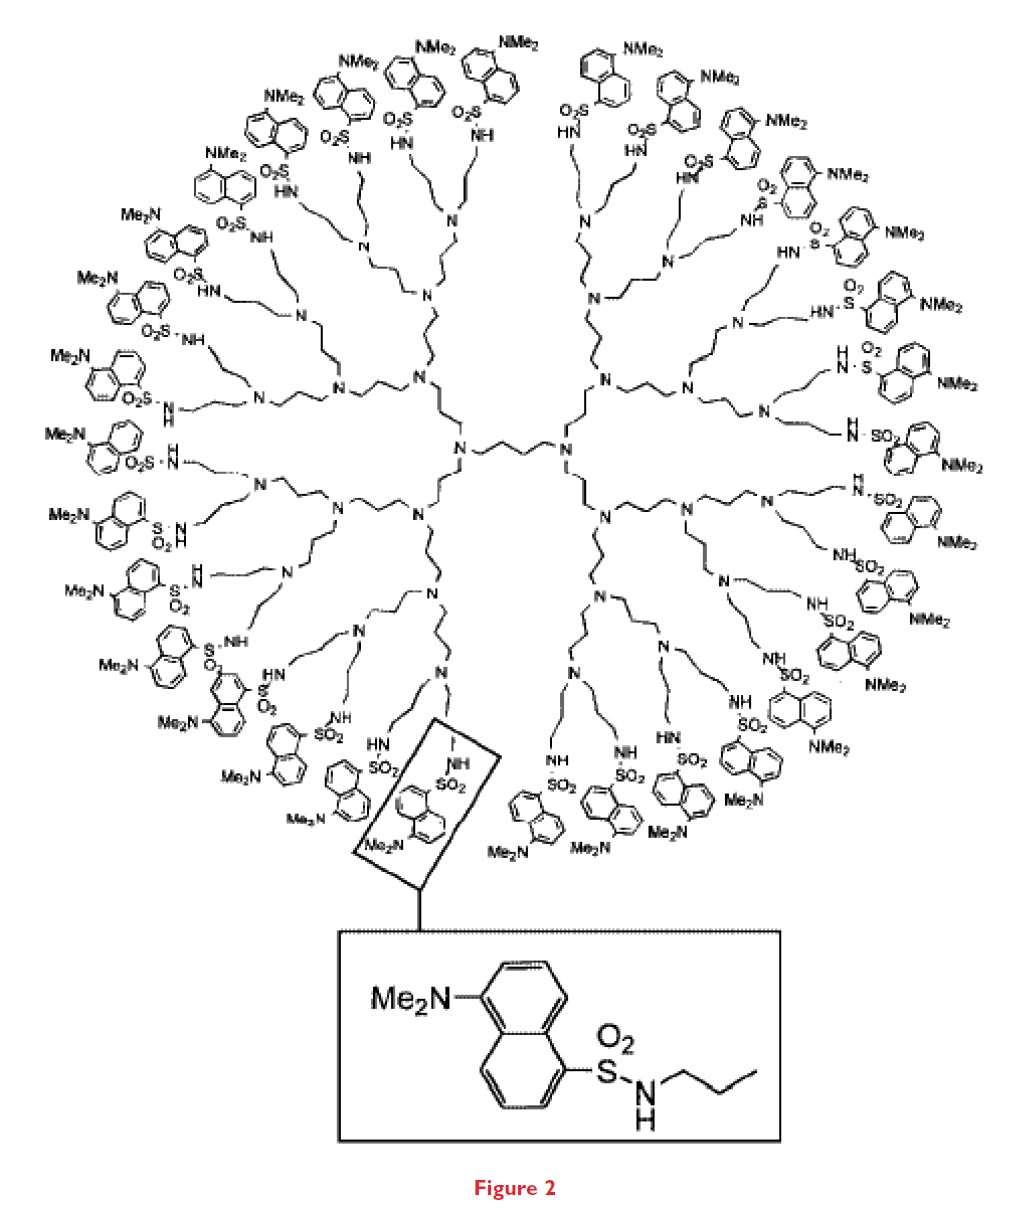 Figure 2 Polymers are synthesised as monodisperse rod-shaped or spherical structures ranging from 1 to 20nm diameter